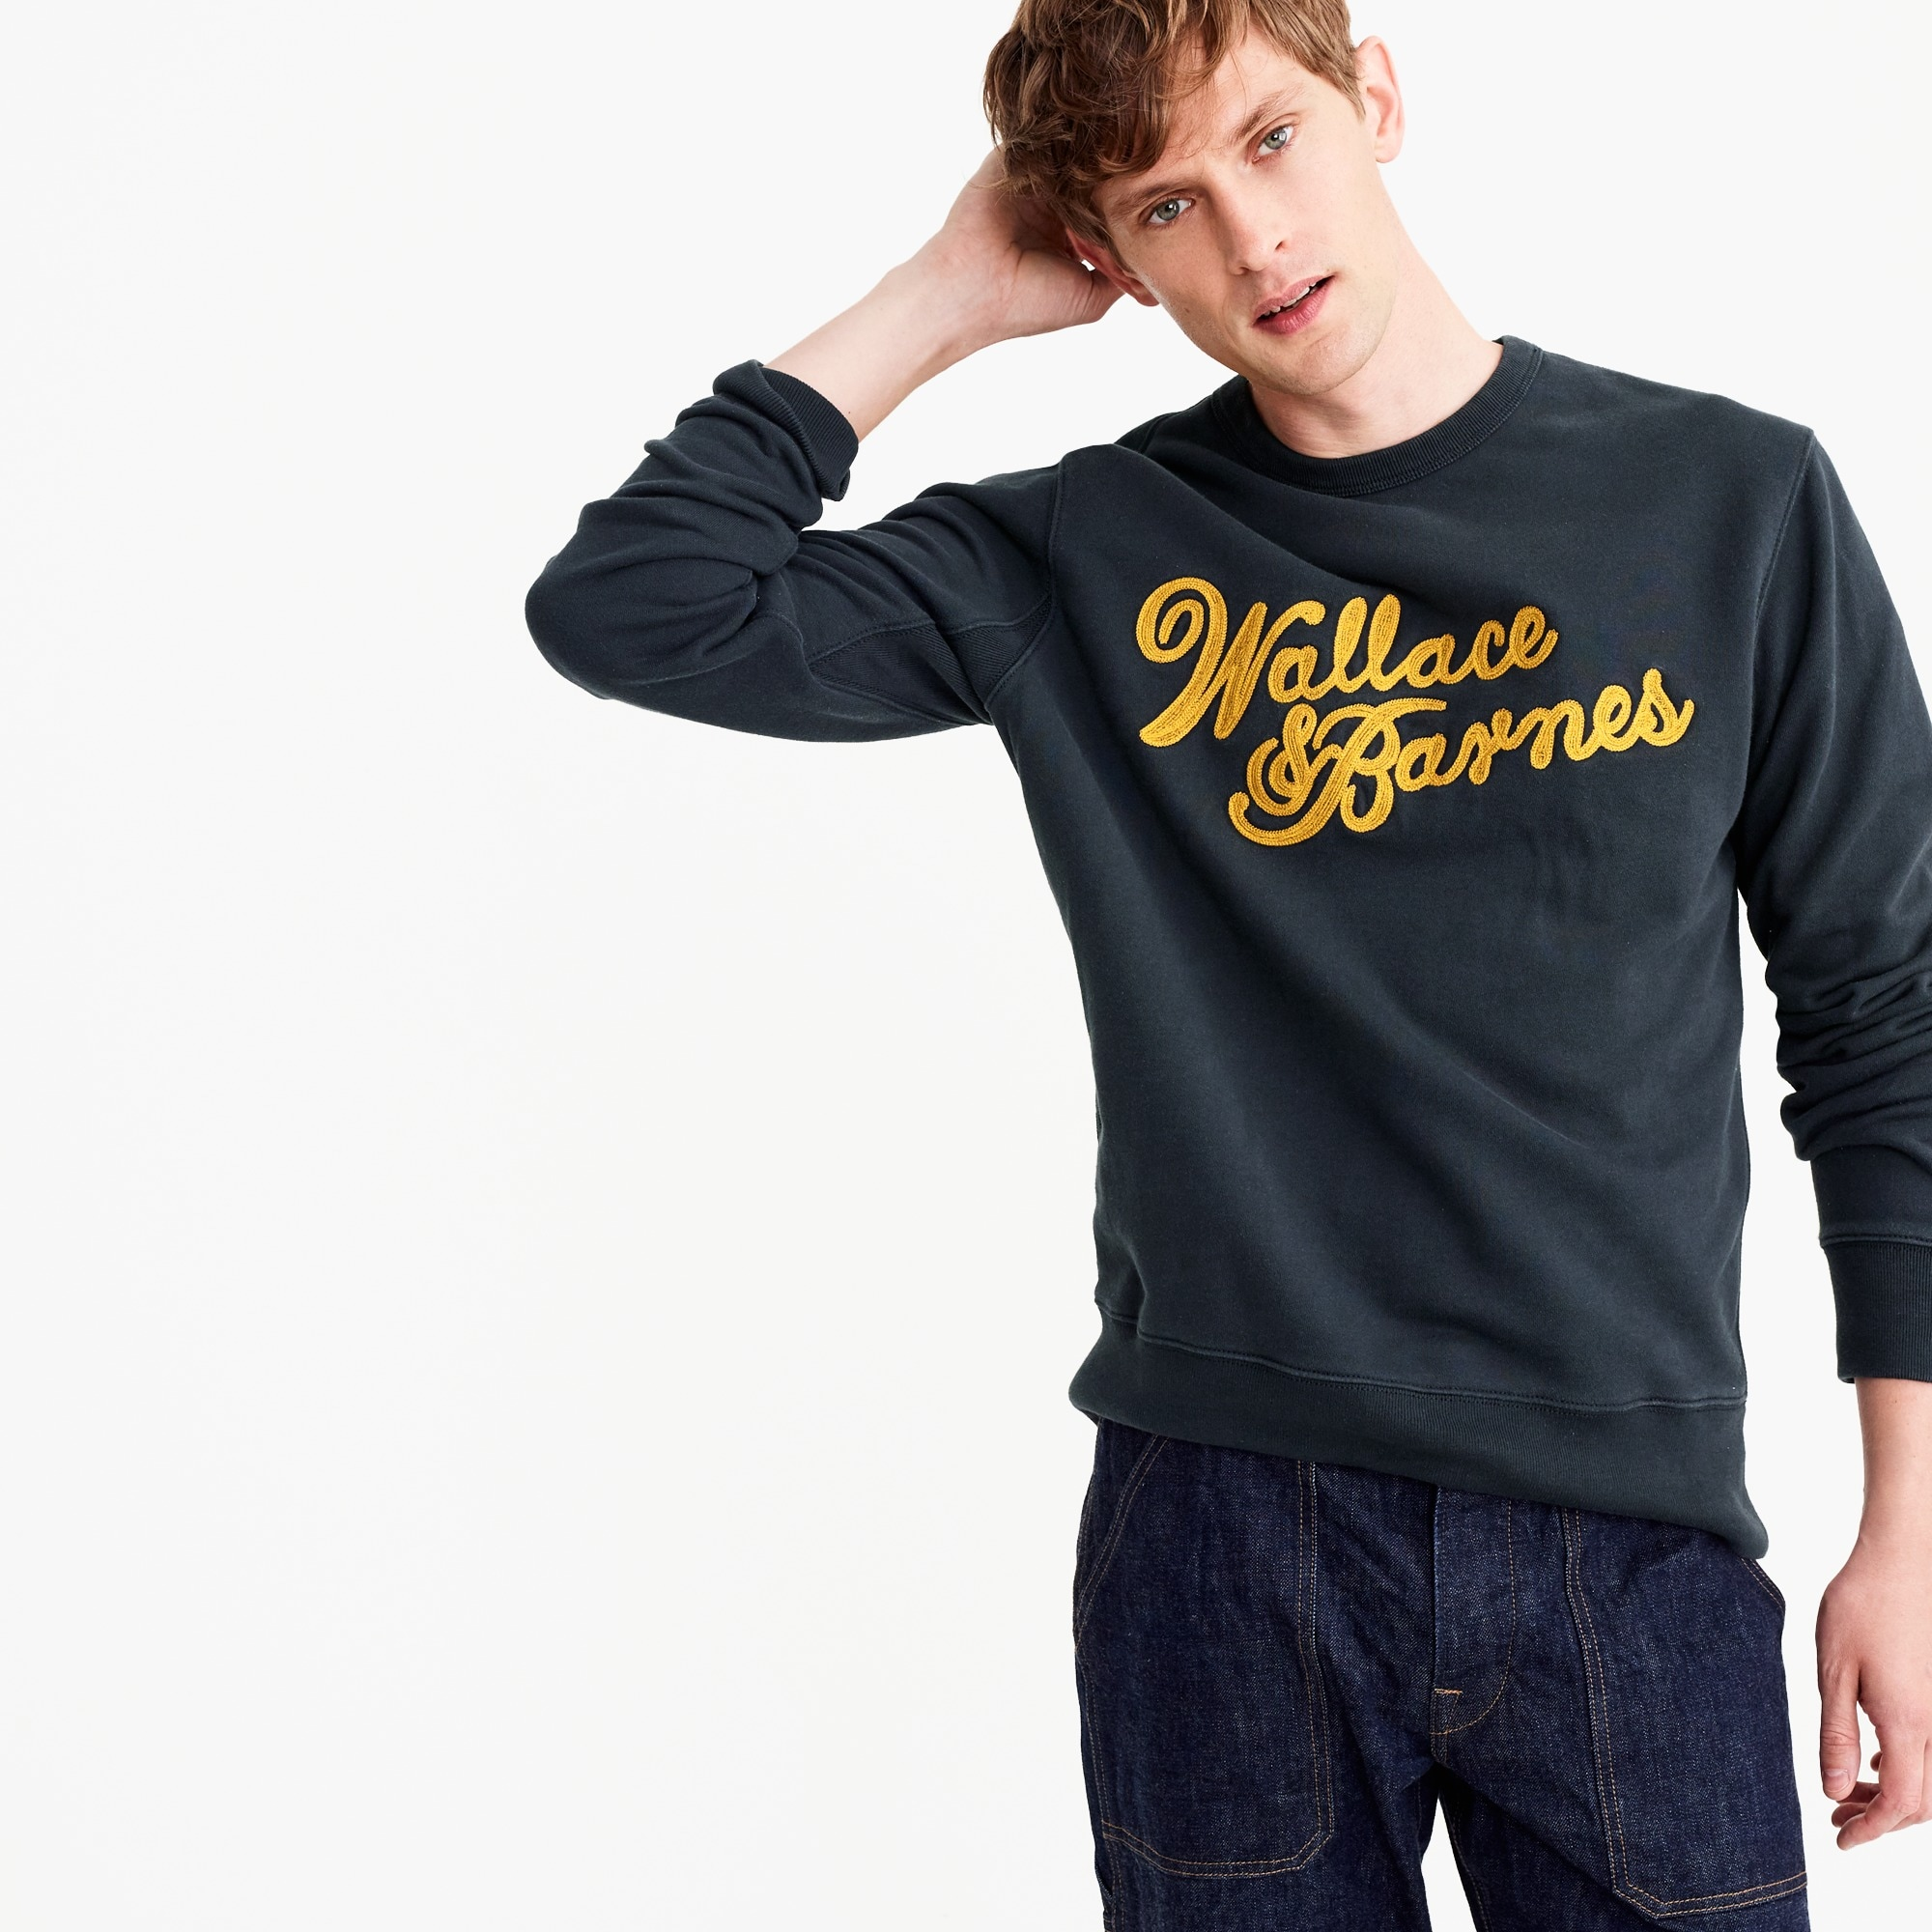 Image 1 for Wallace & Barnes crewneck sweatshirt with chain-stitch logo